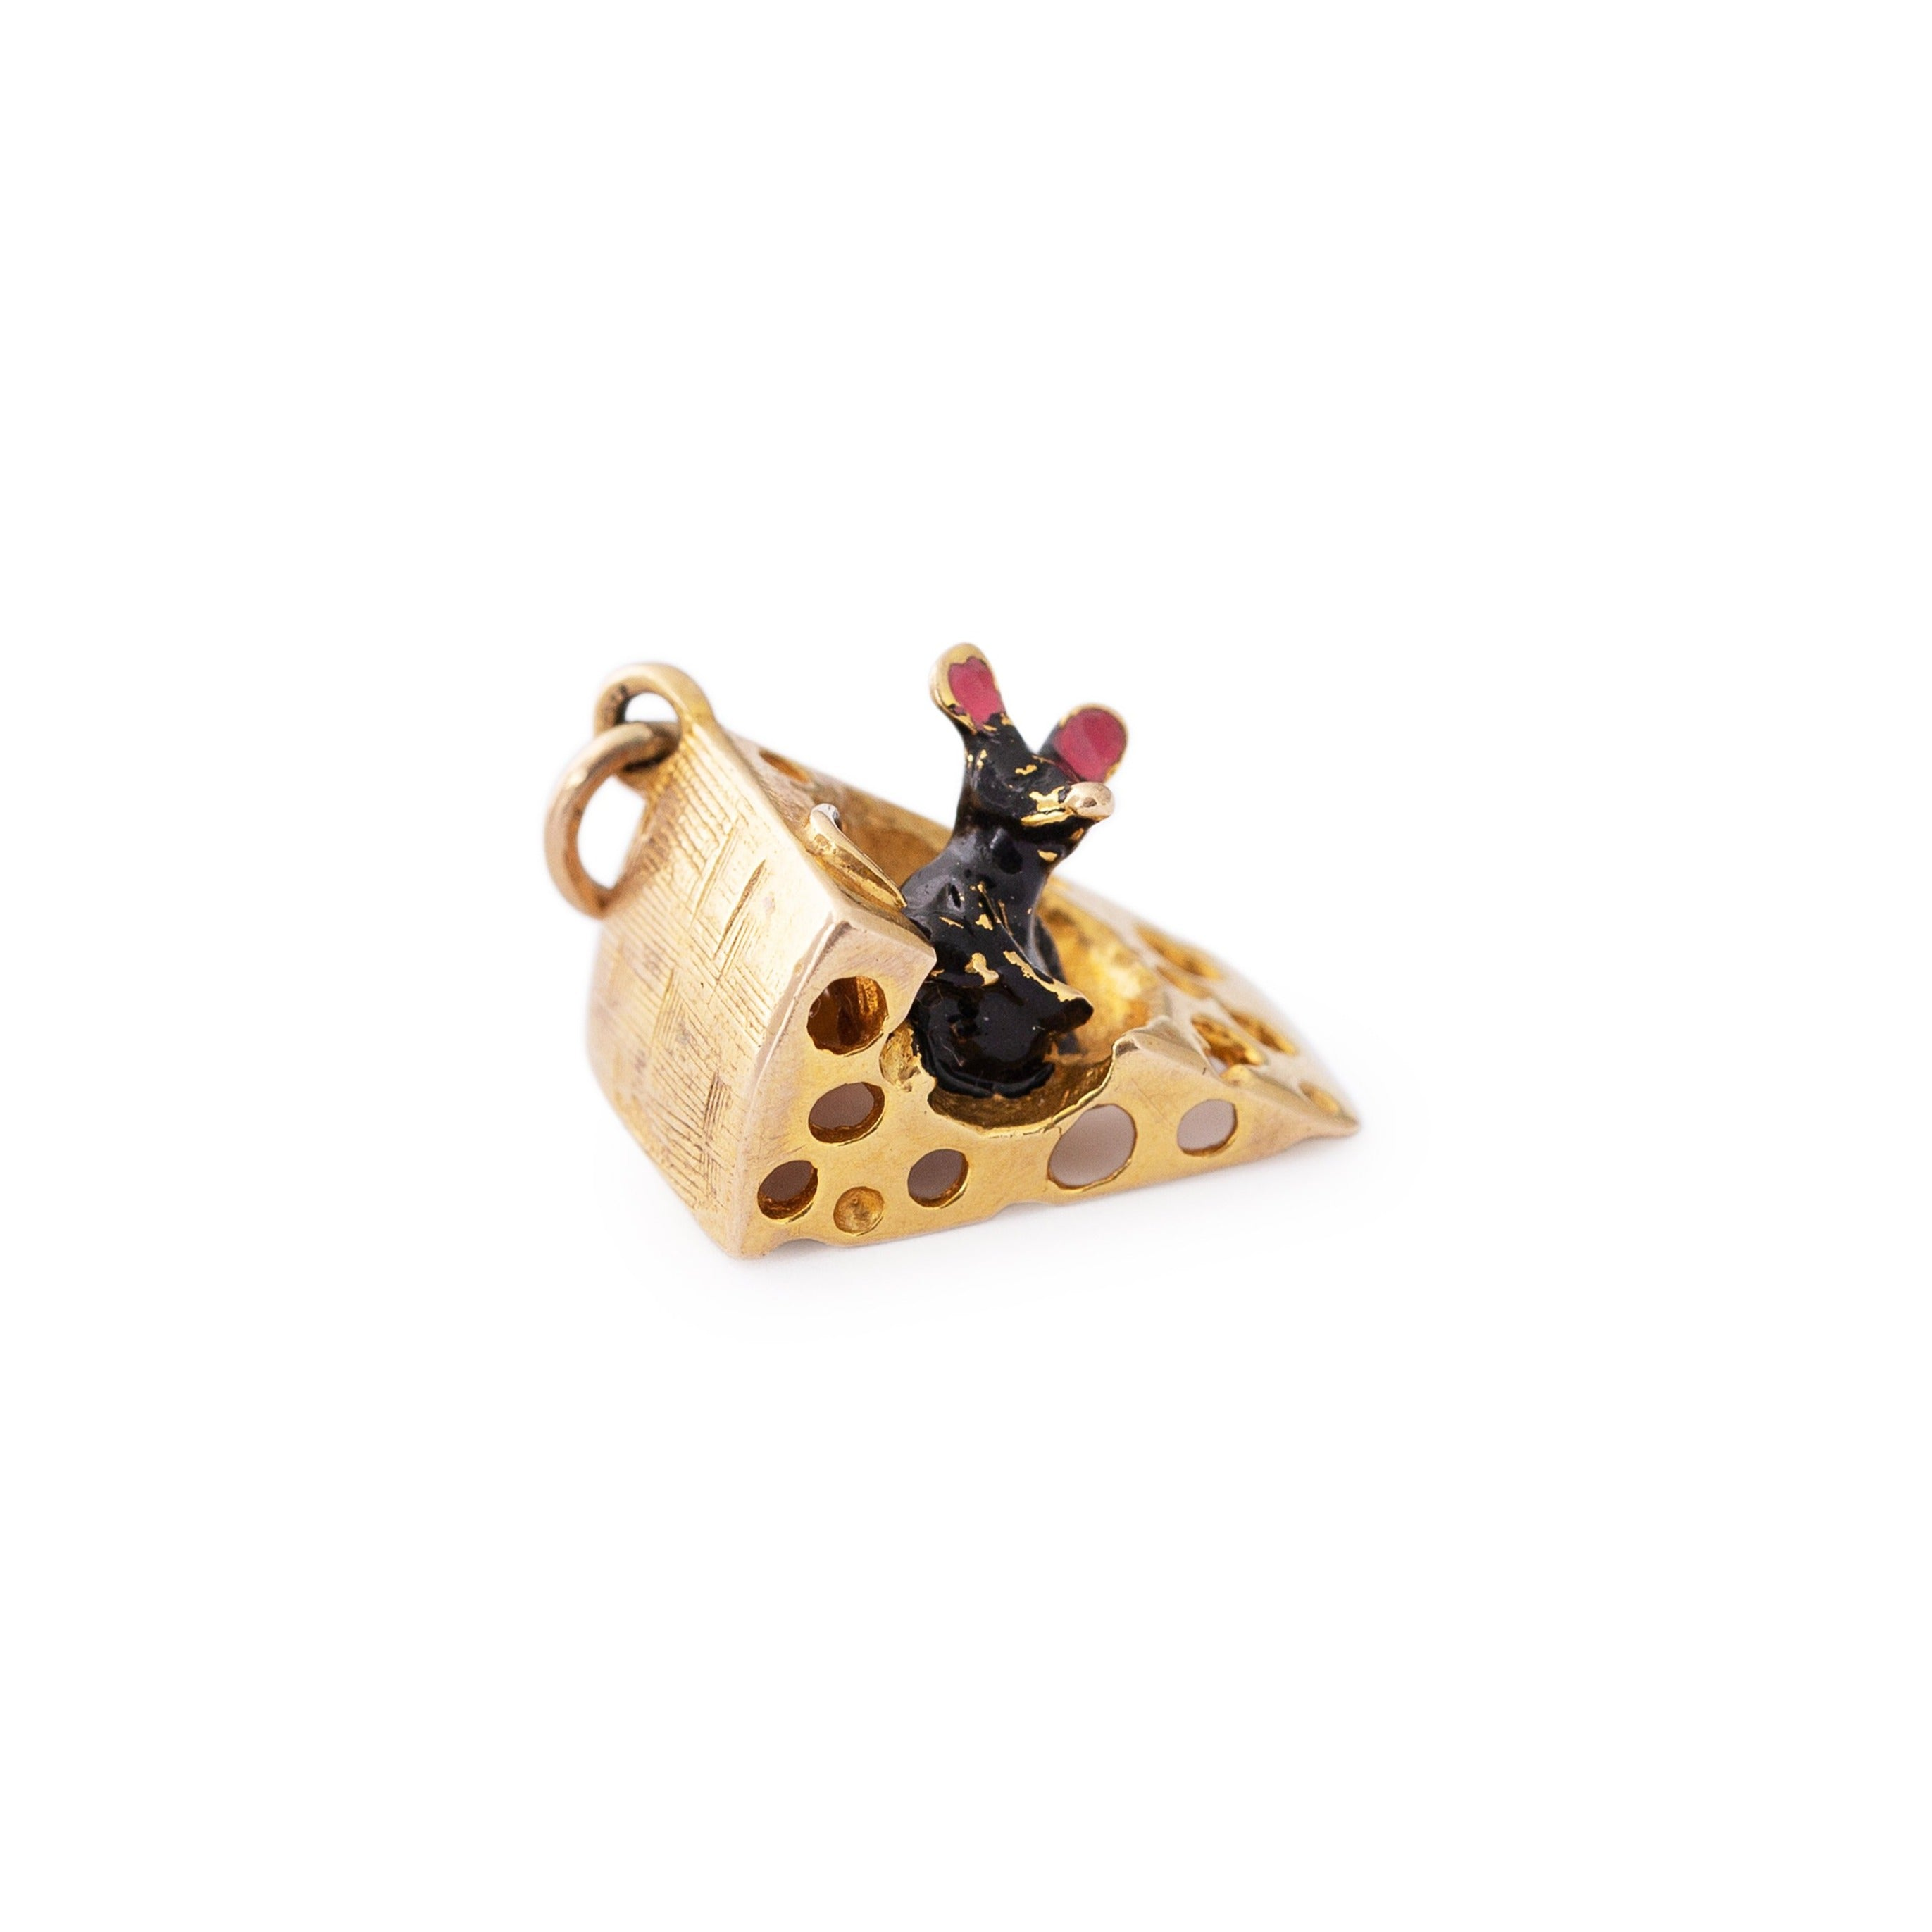 English Mouse and Cheese 9k Gold and Enamel Charm